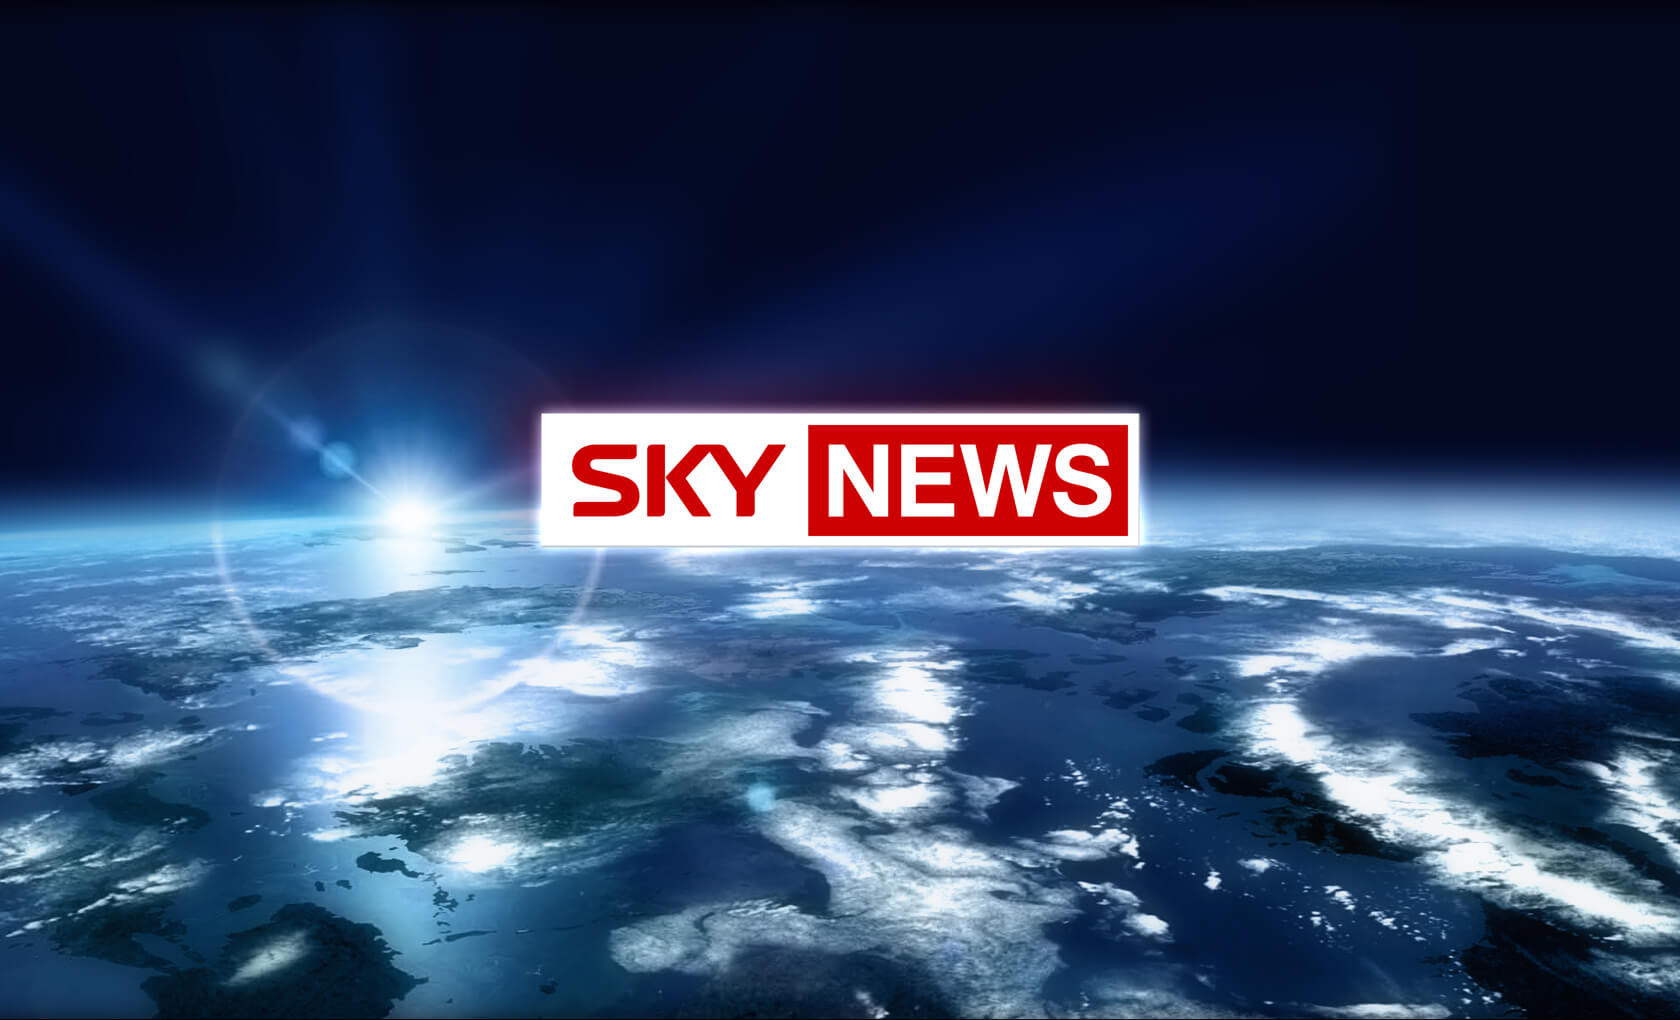 Sky News - A Display Rights Video Licensing Content Partner